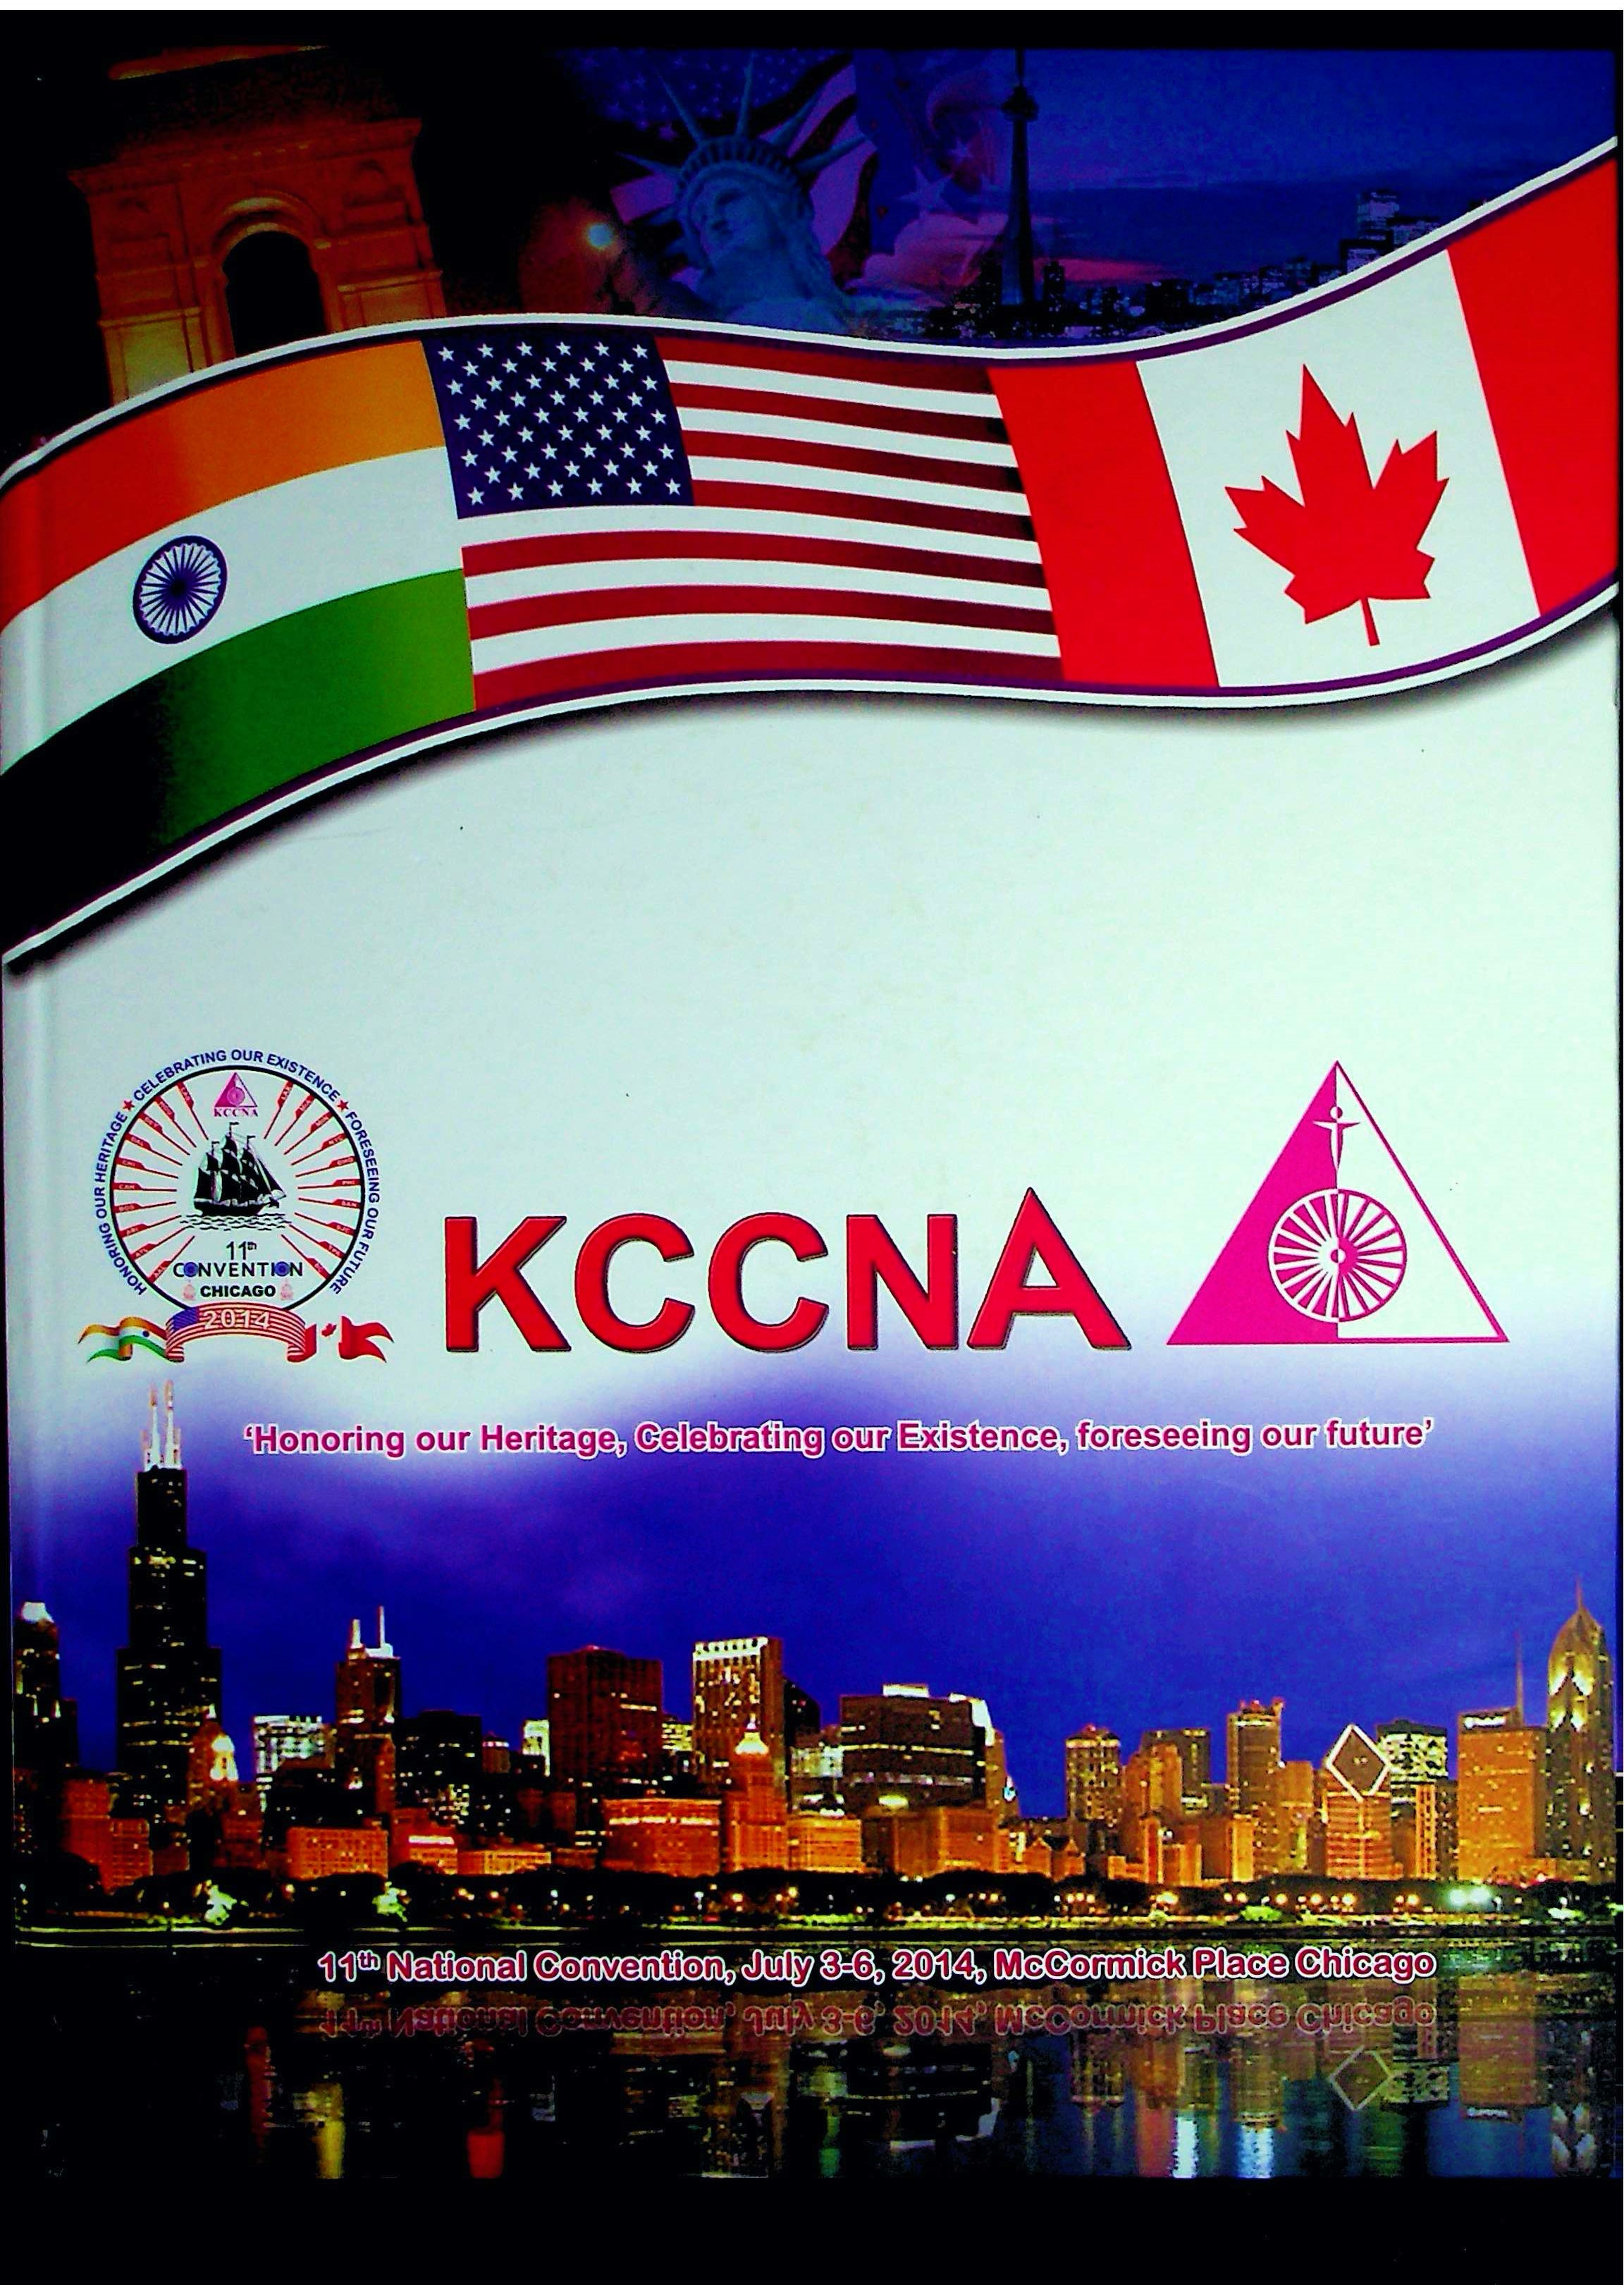 KCCNA Convention 2014